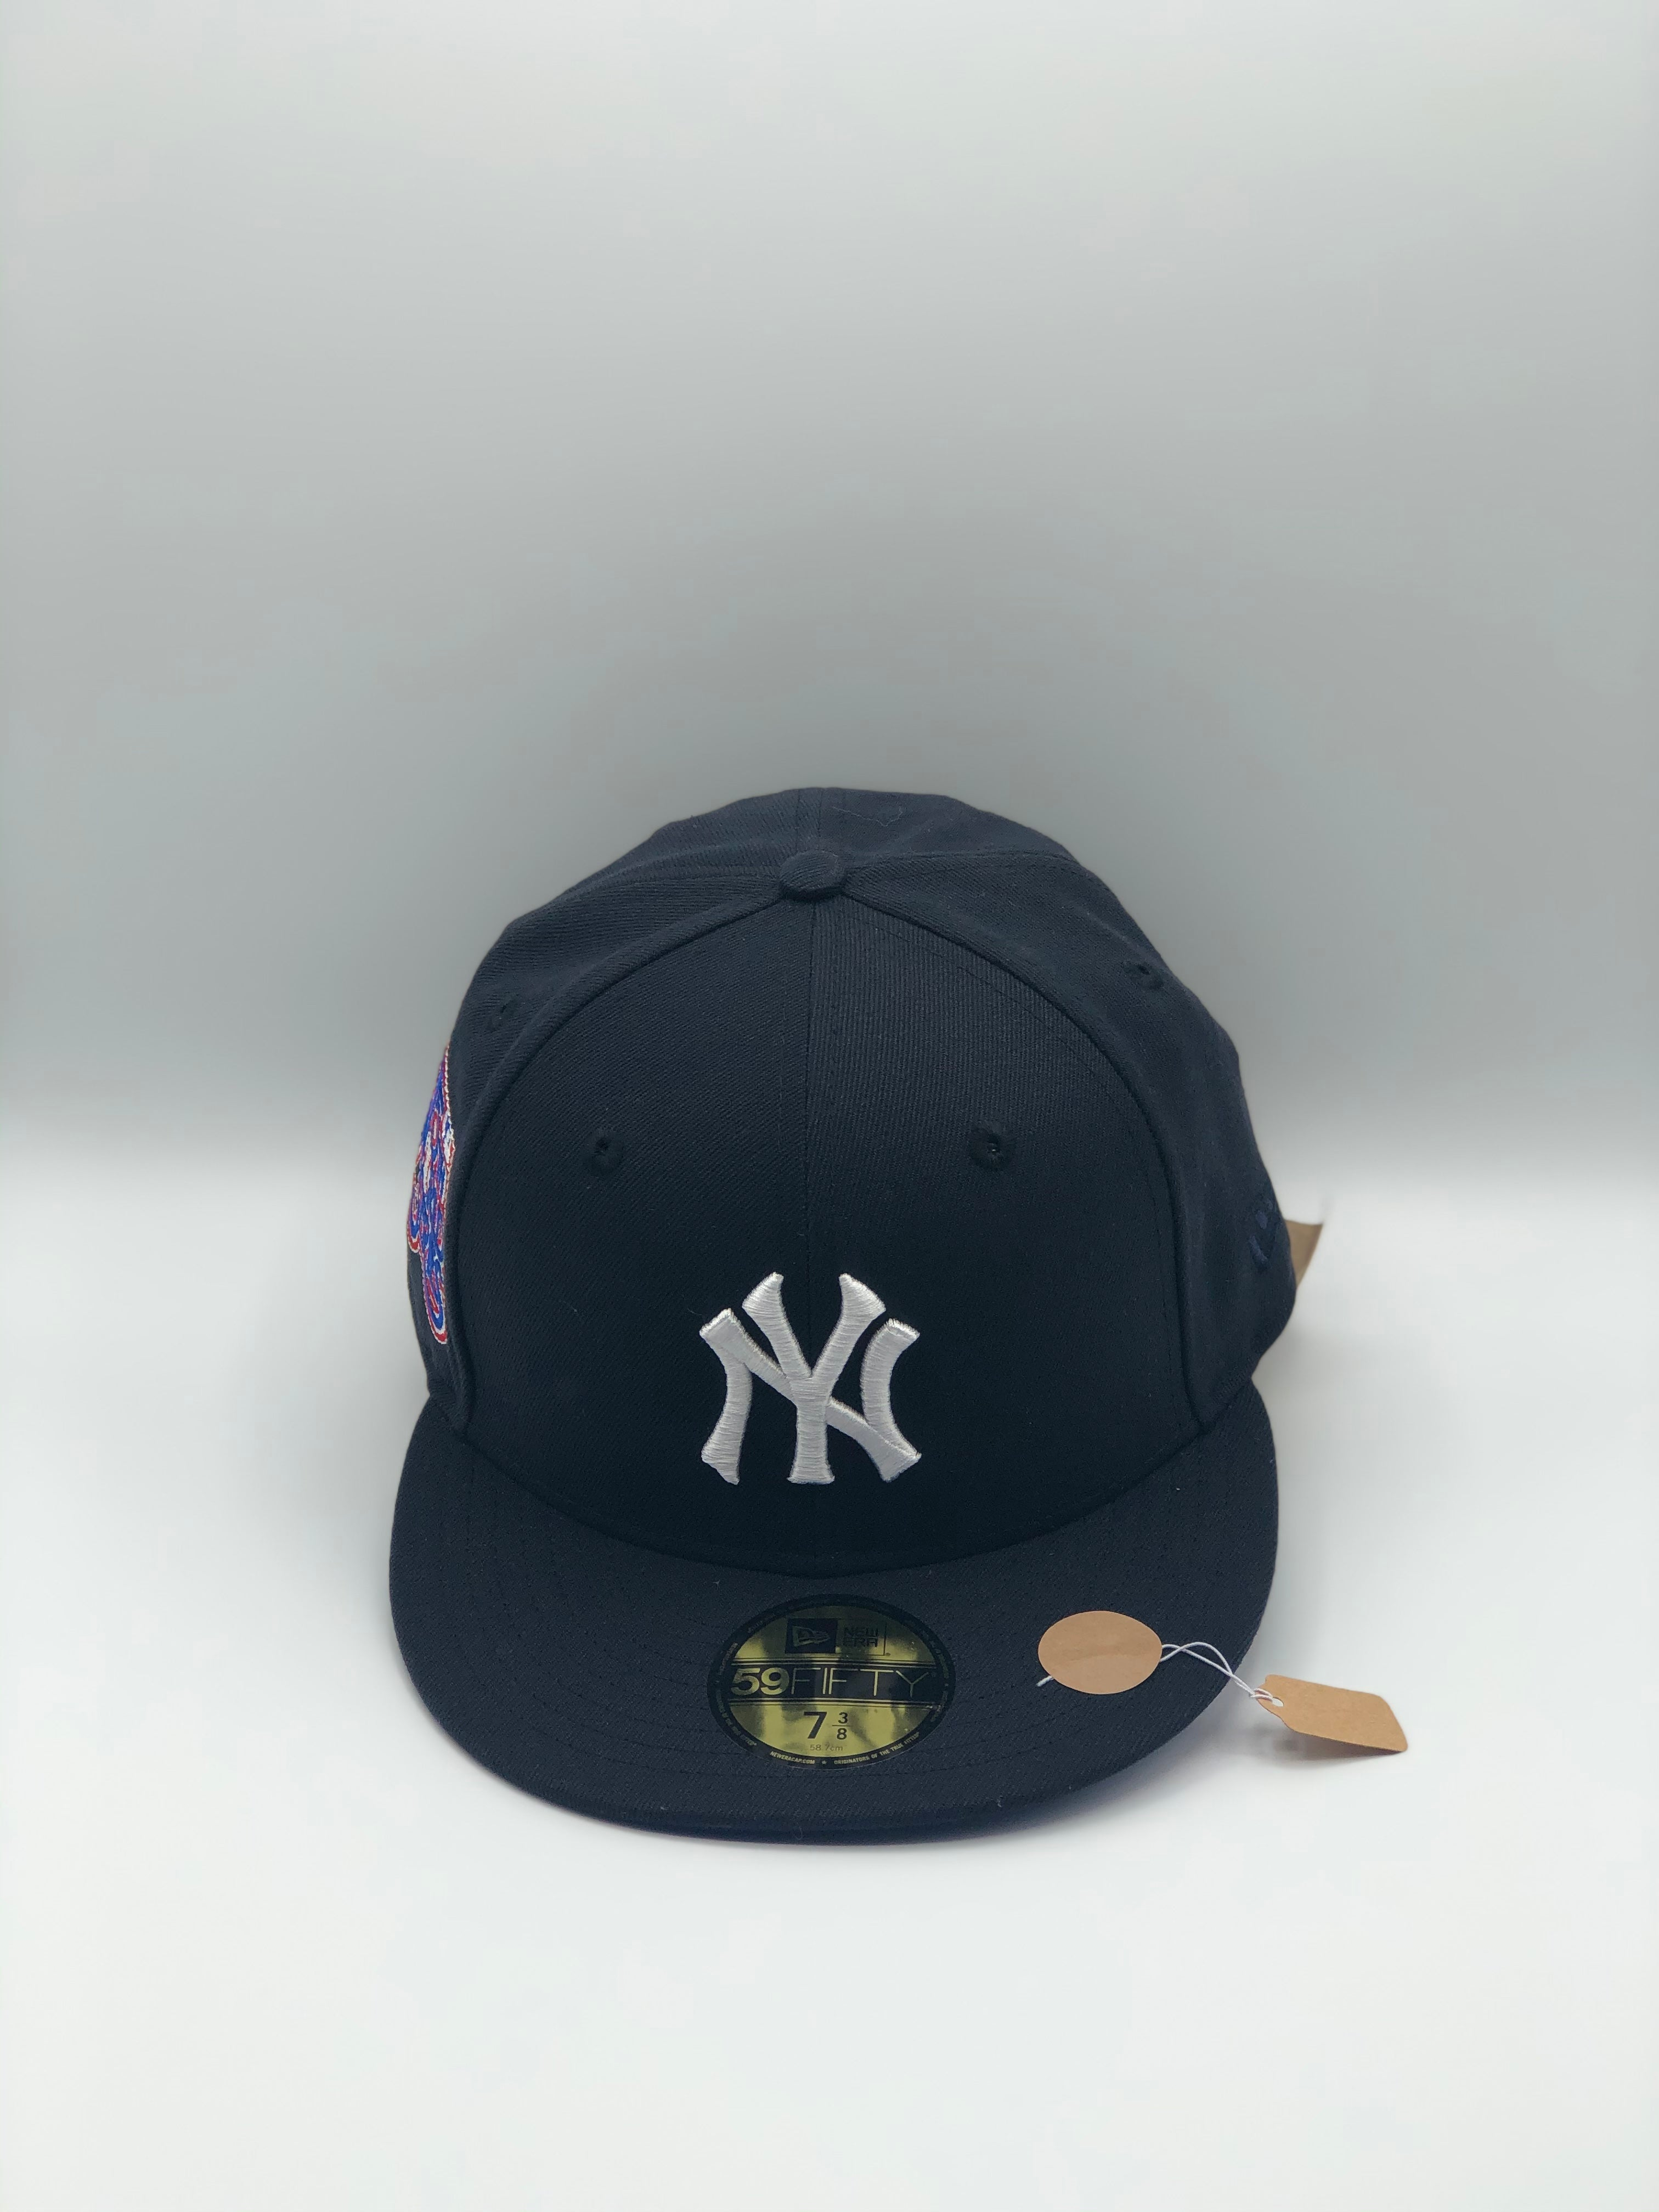 NEW YORK YANKEES x 1978 WS NEW ERA 59FIFTY ROYAL UV